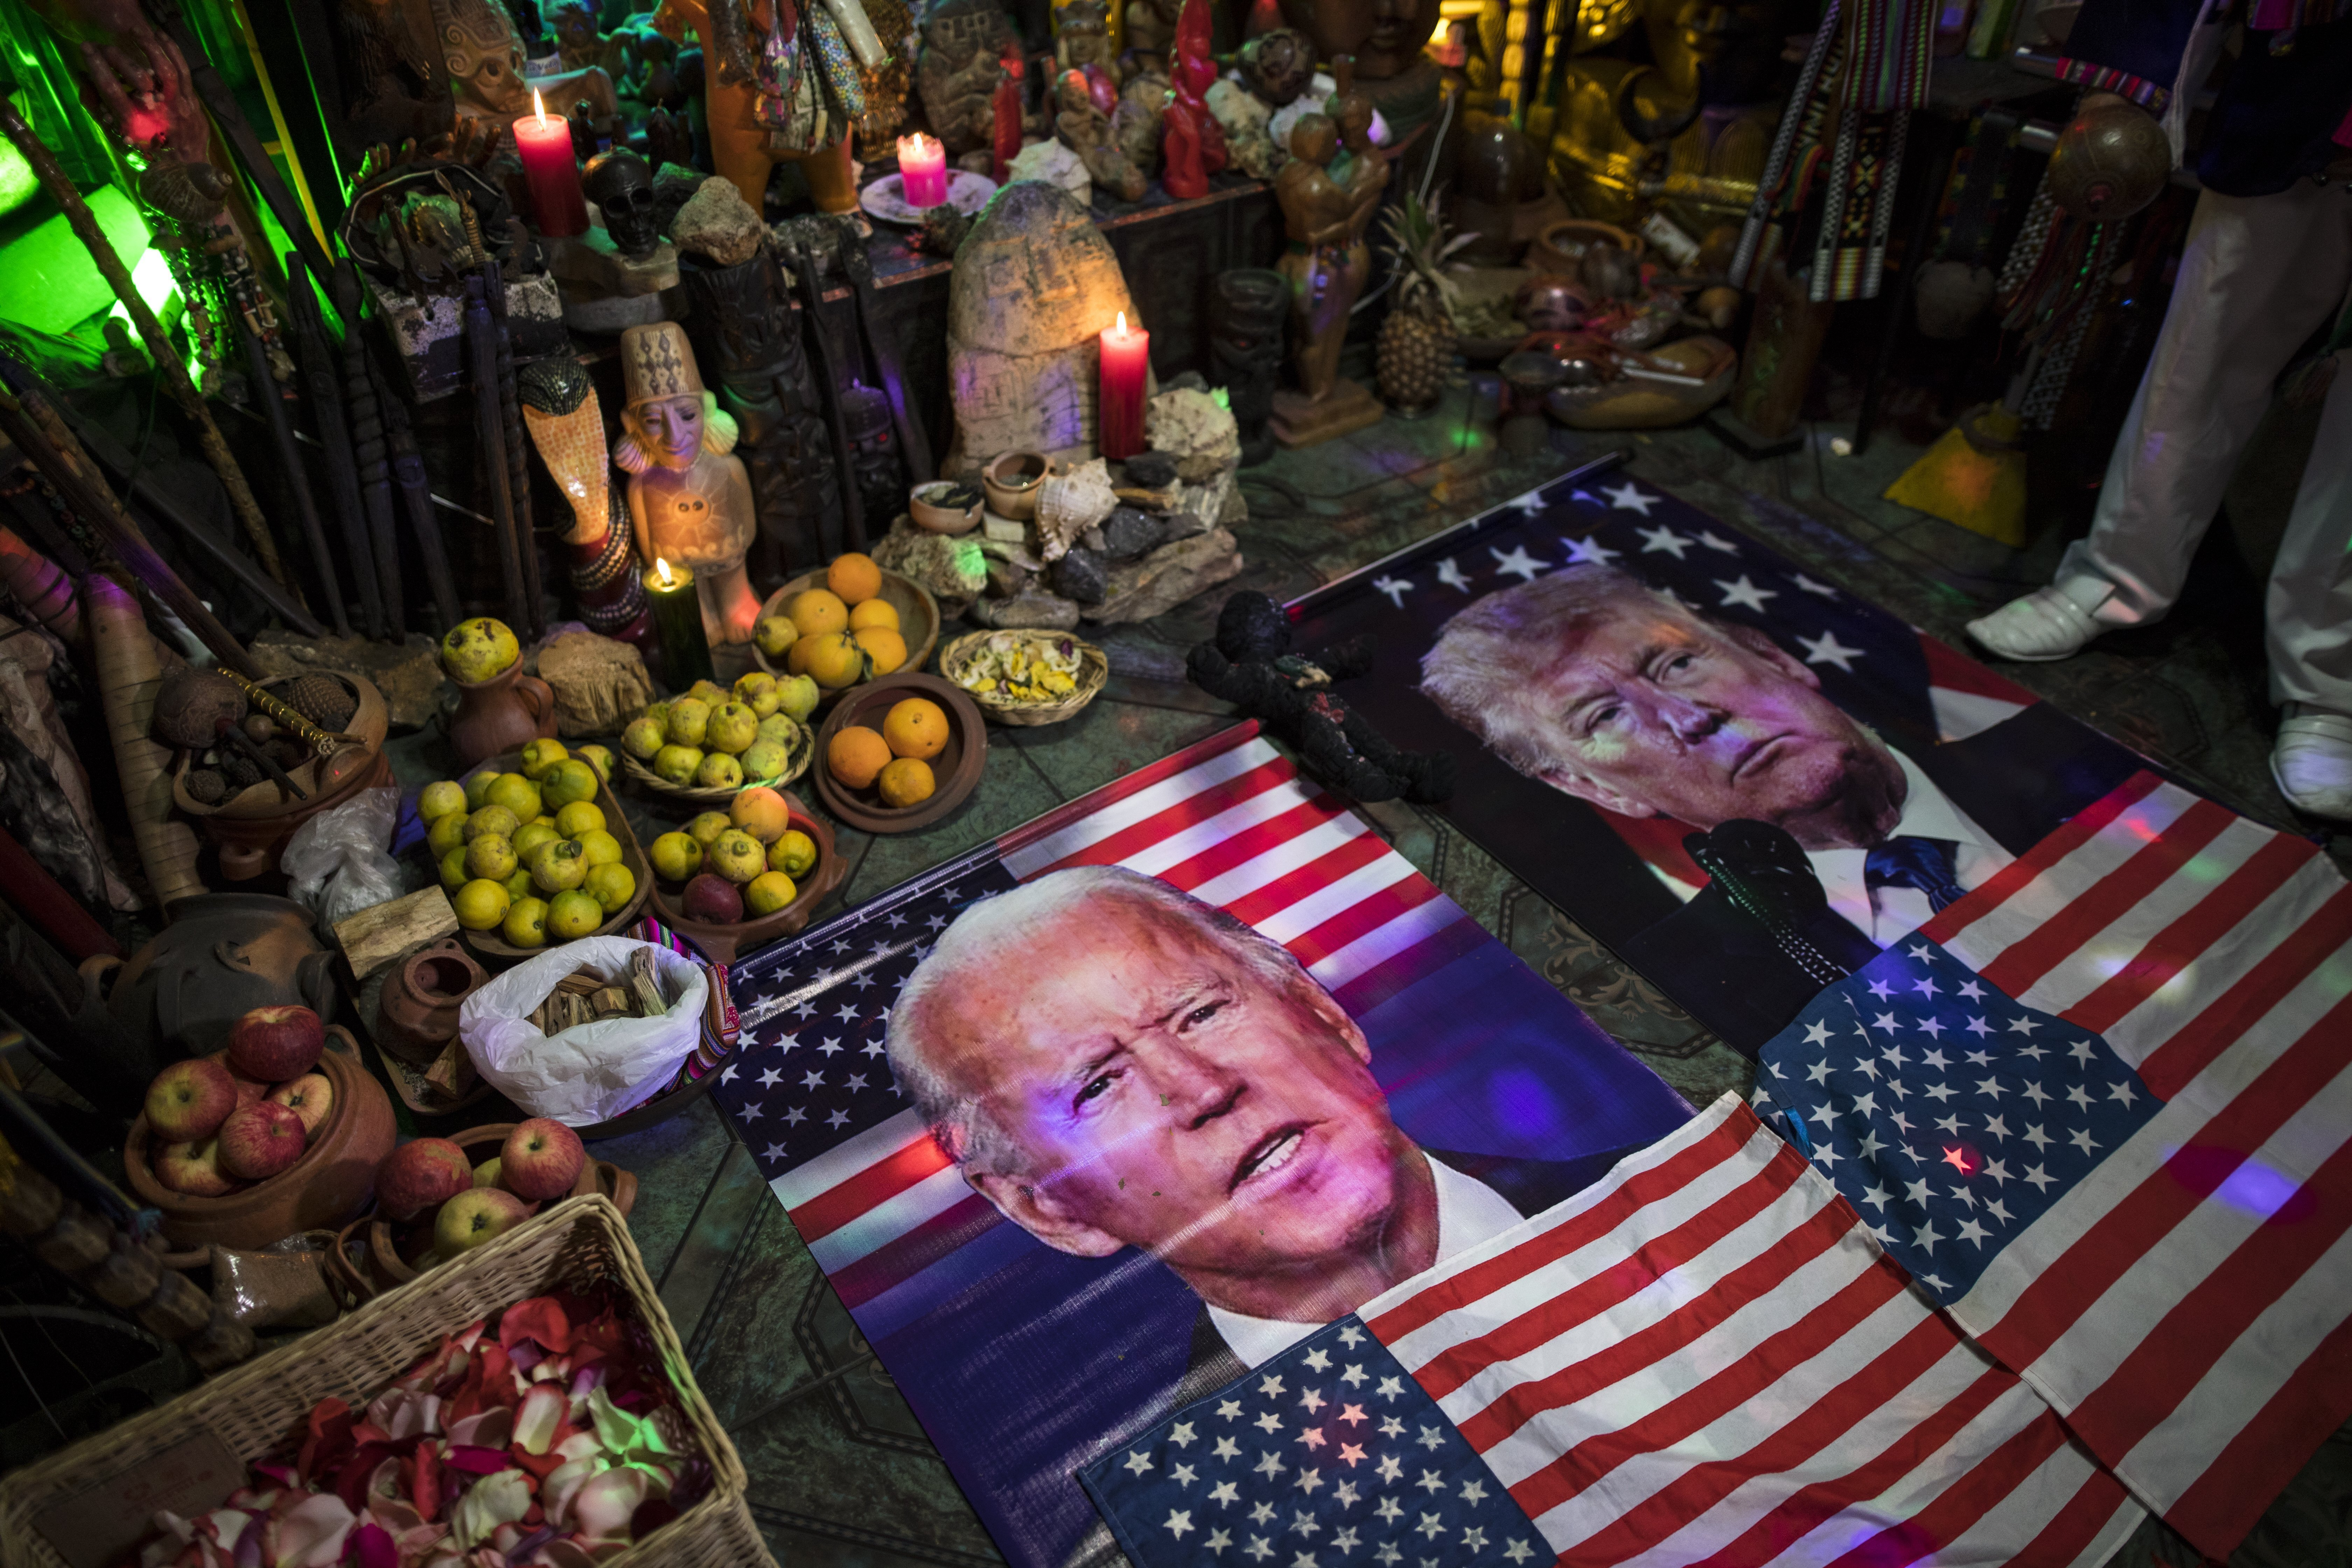 Images of Joe Biden and Donald Trump with American flags are seen next to bowls of fruit and candles